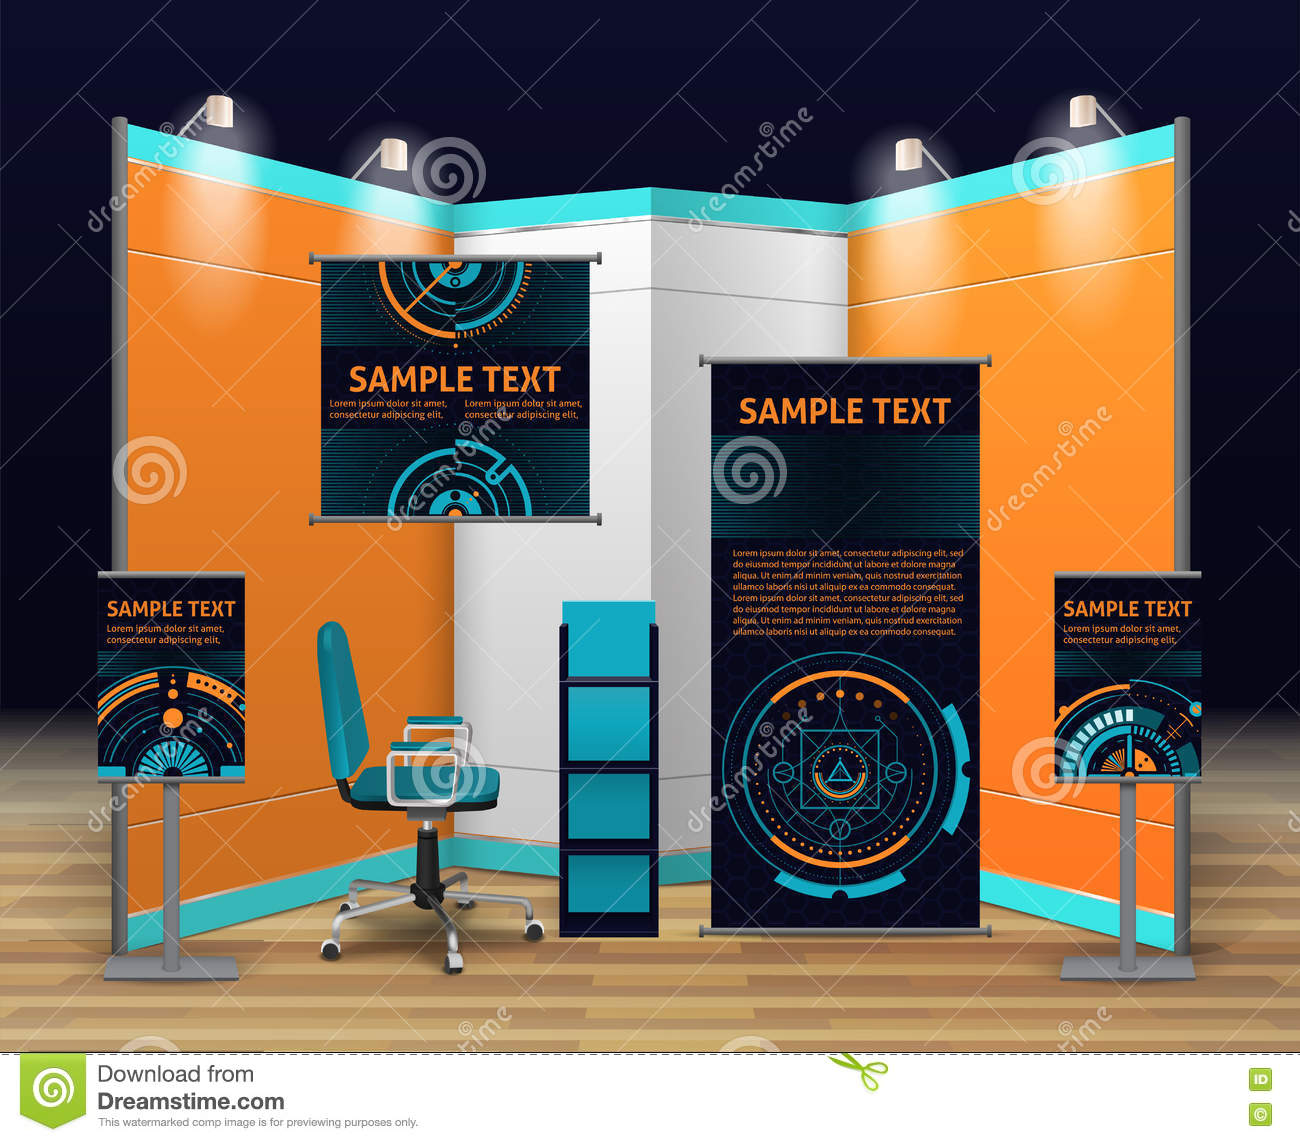 Exhibition Stall Xl : Exhibition stand design stock vector. illustration of chair 79064302